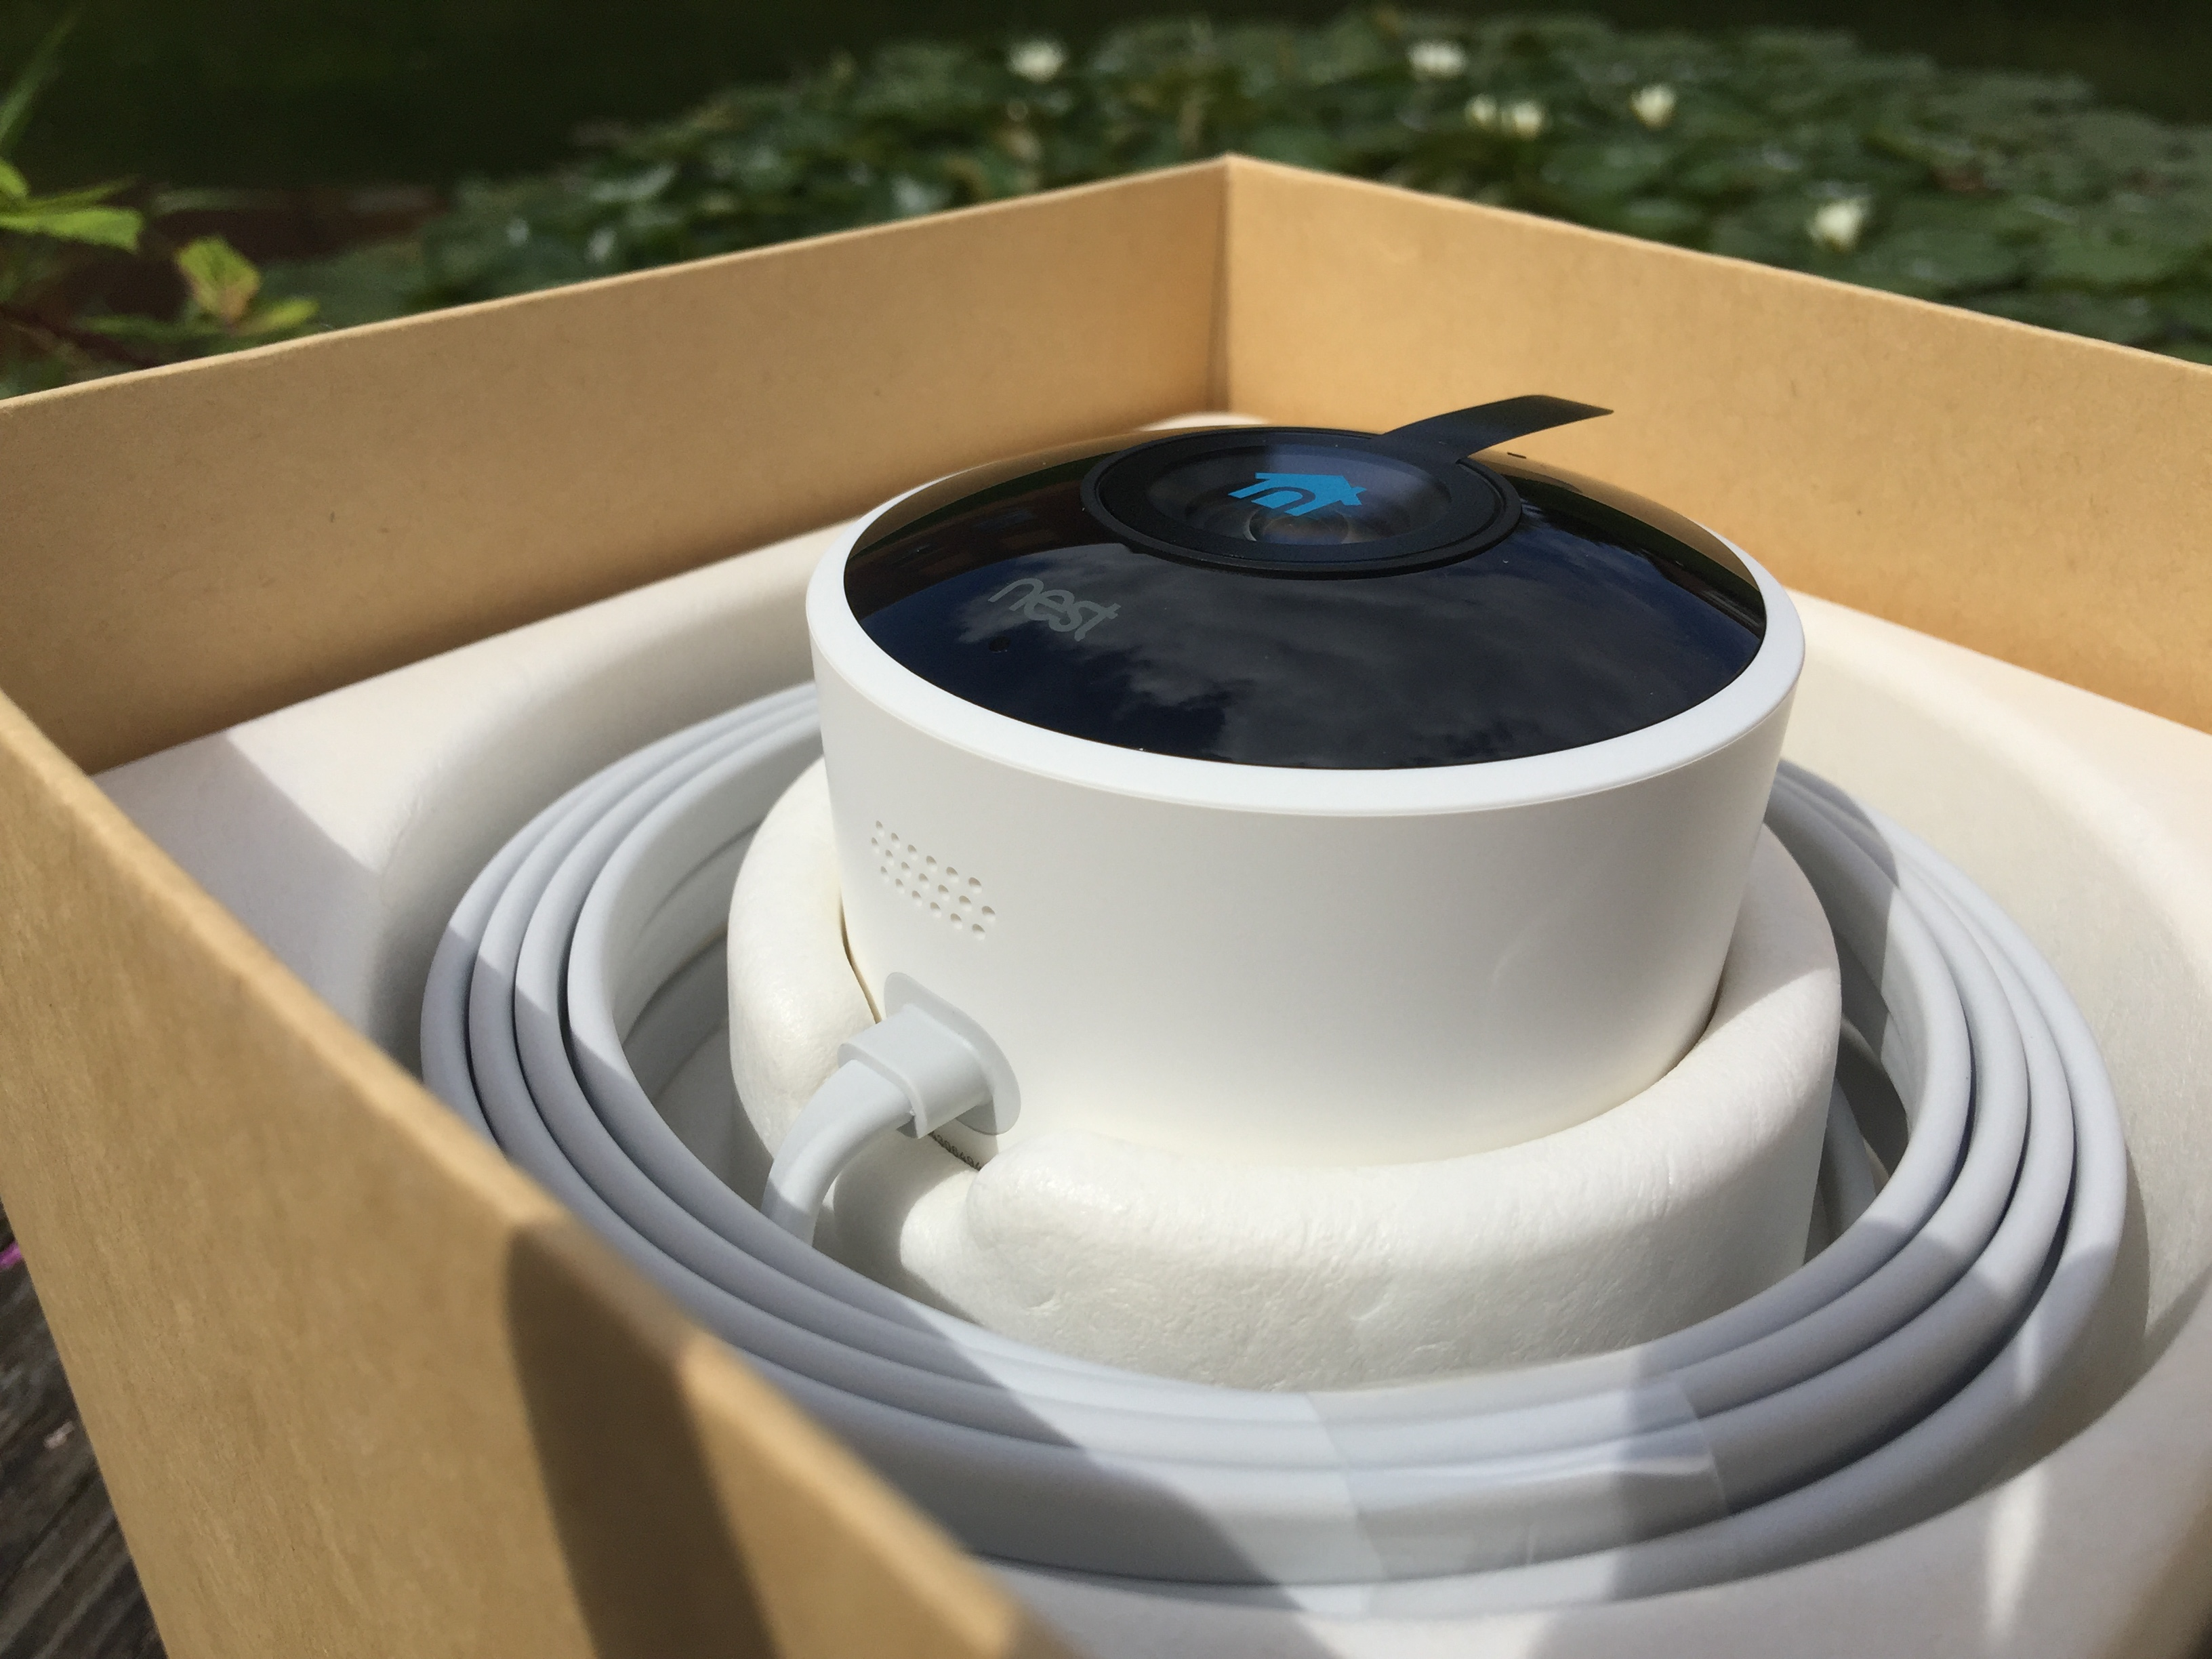 http://techgaming.nl/image_uploads/reviews/Nestcam-outdoor/low1.JPG